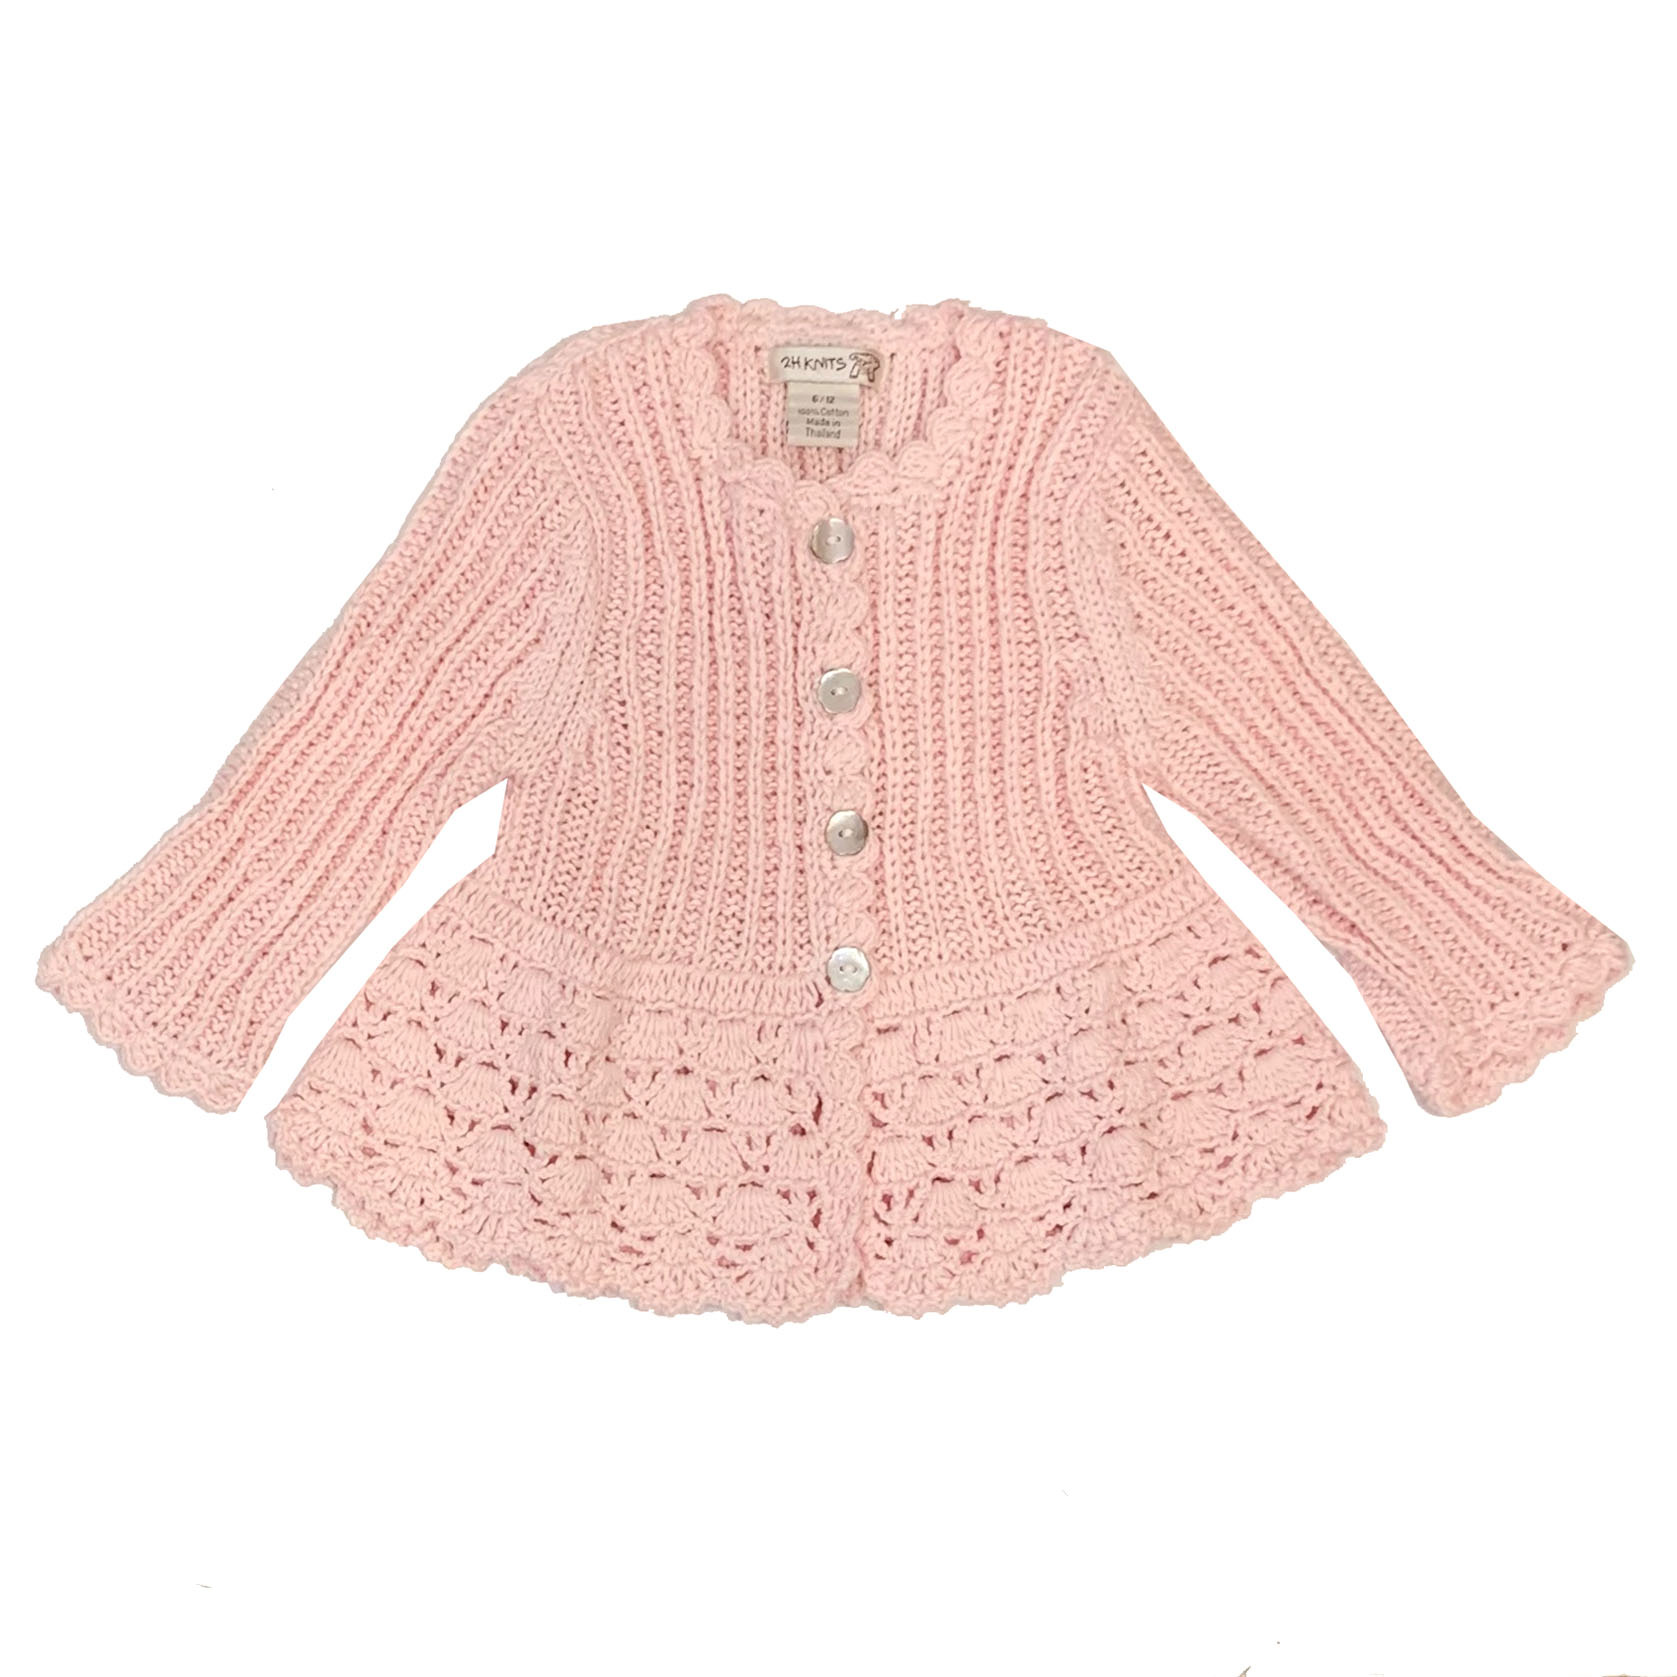 2 H Knits Light Pink Peplum Sweater